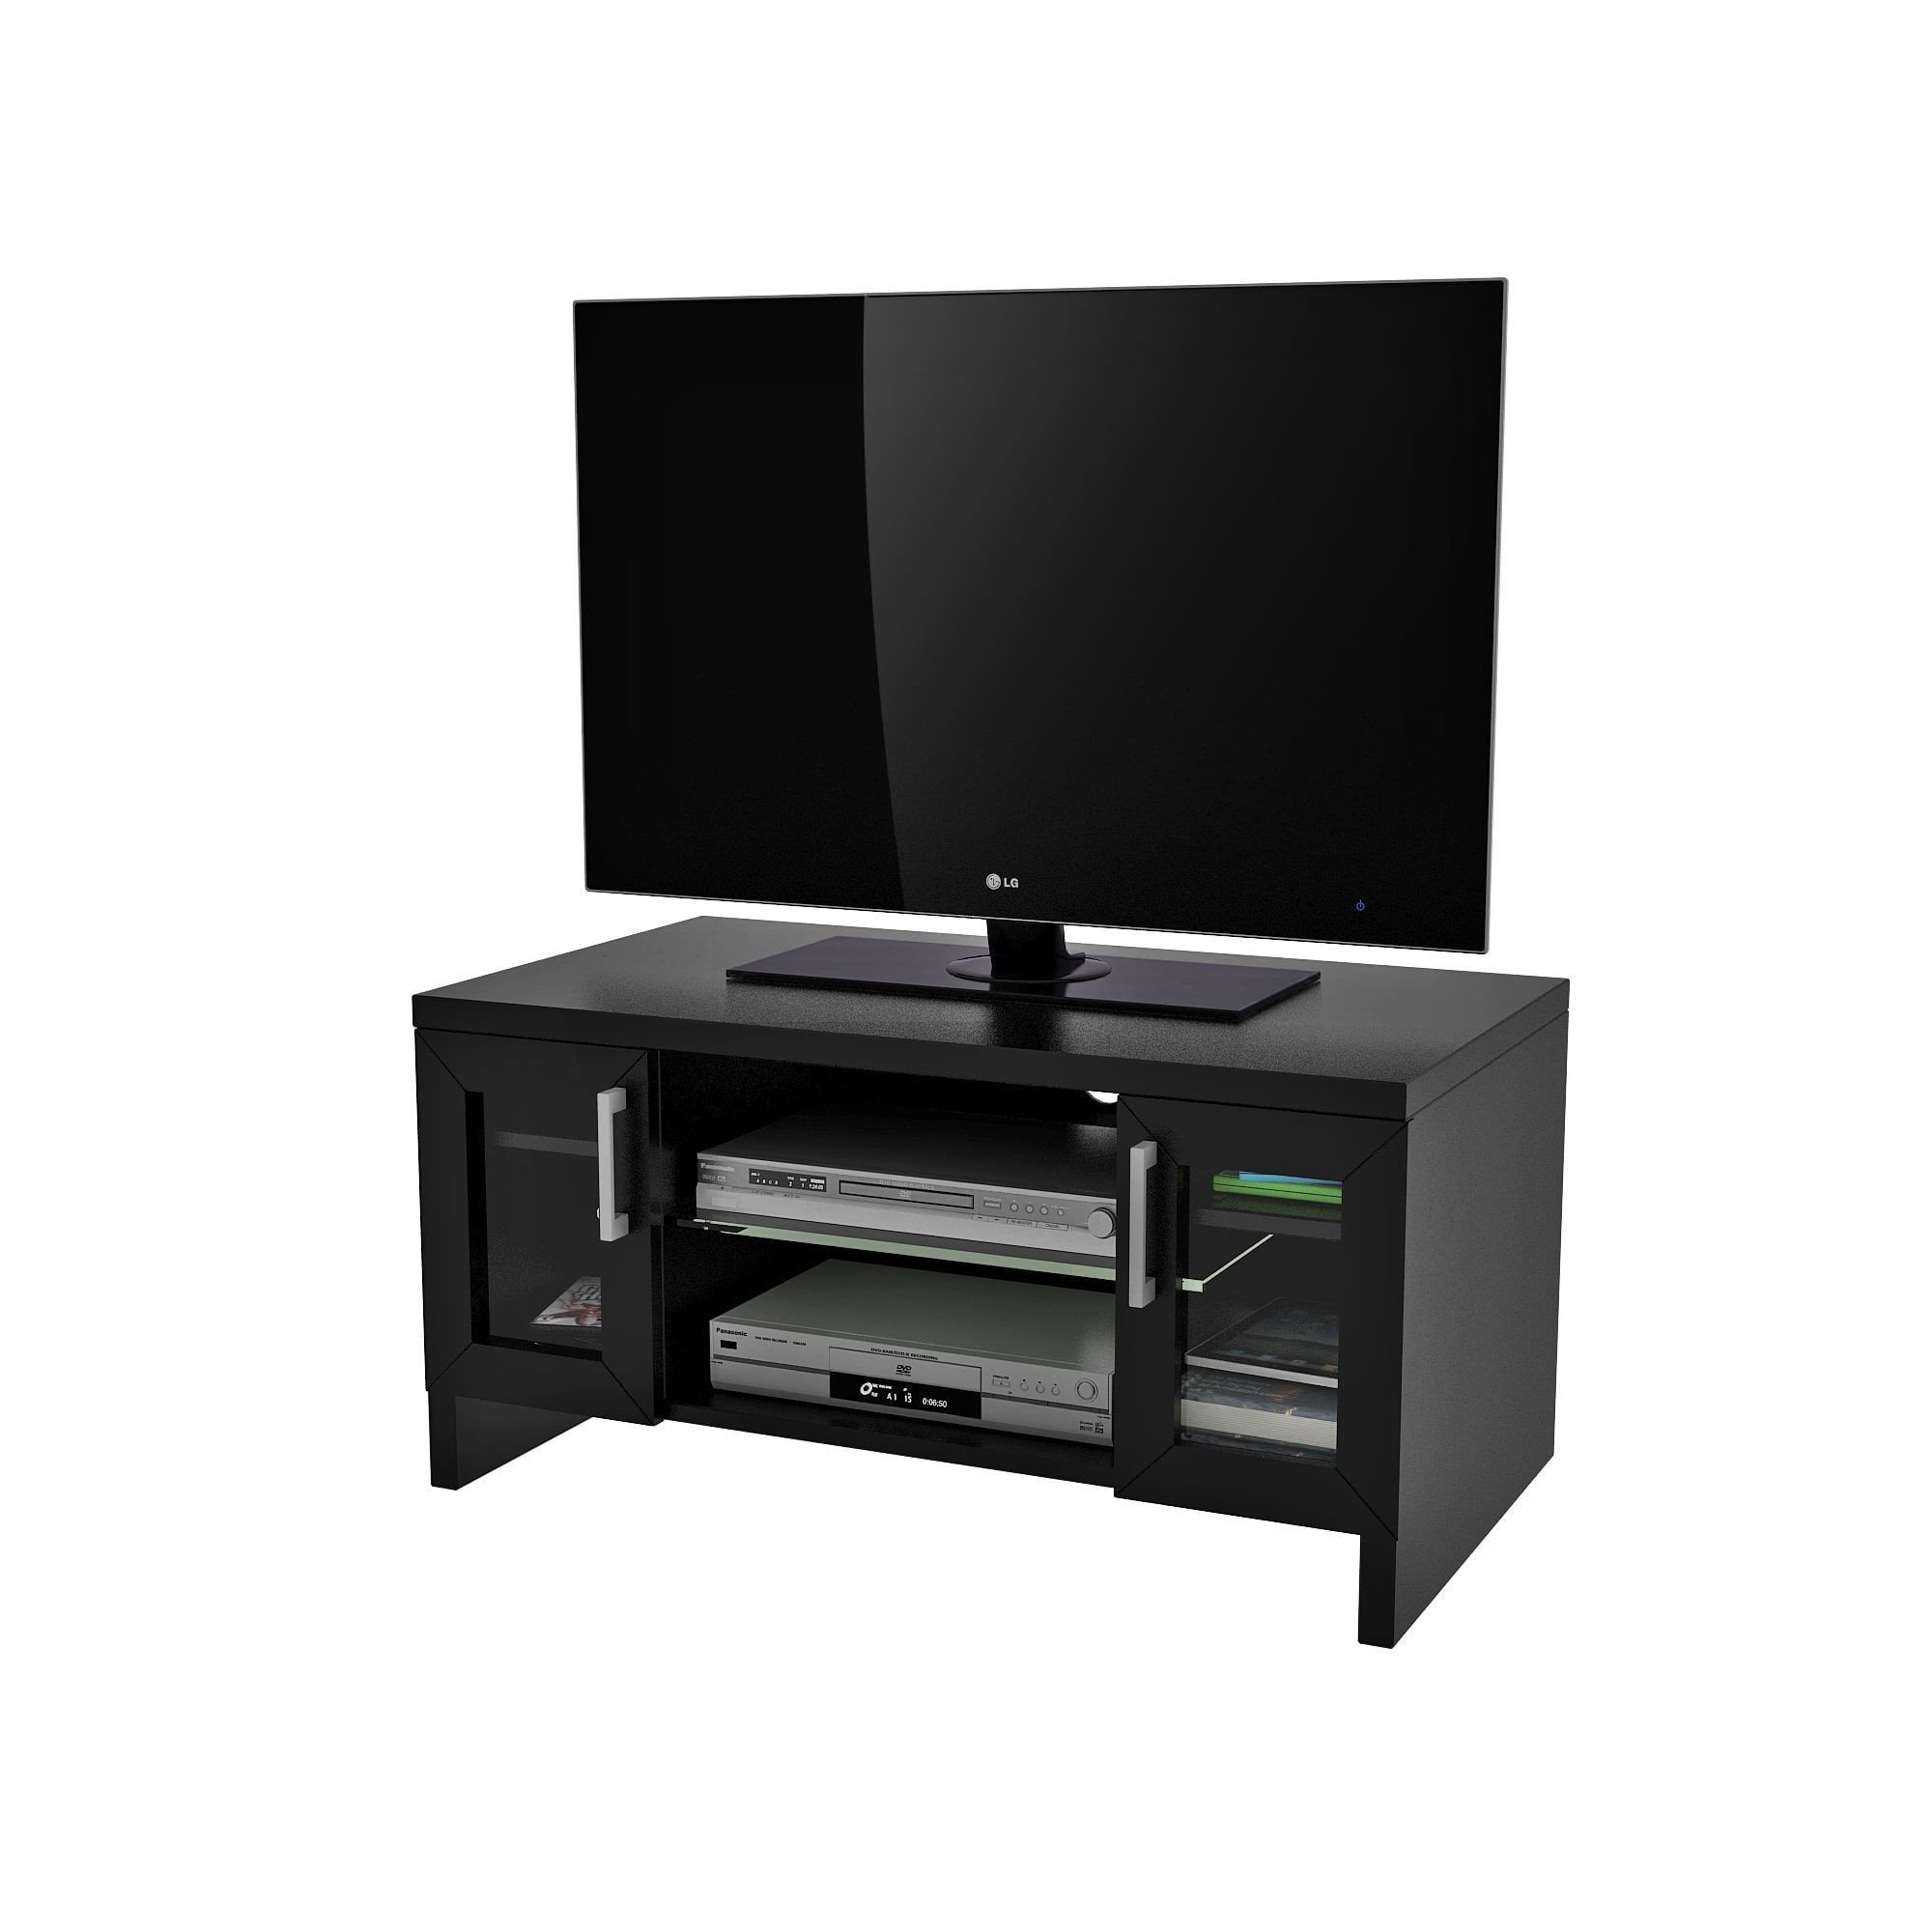 Small Tv Stand for Bedroom Unique Line Shopping Bedding Furniture Electronics Jewelry